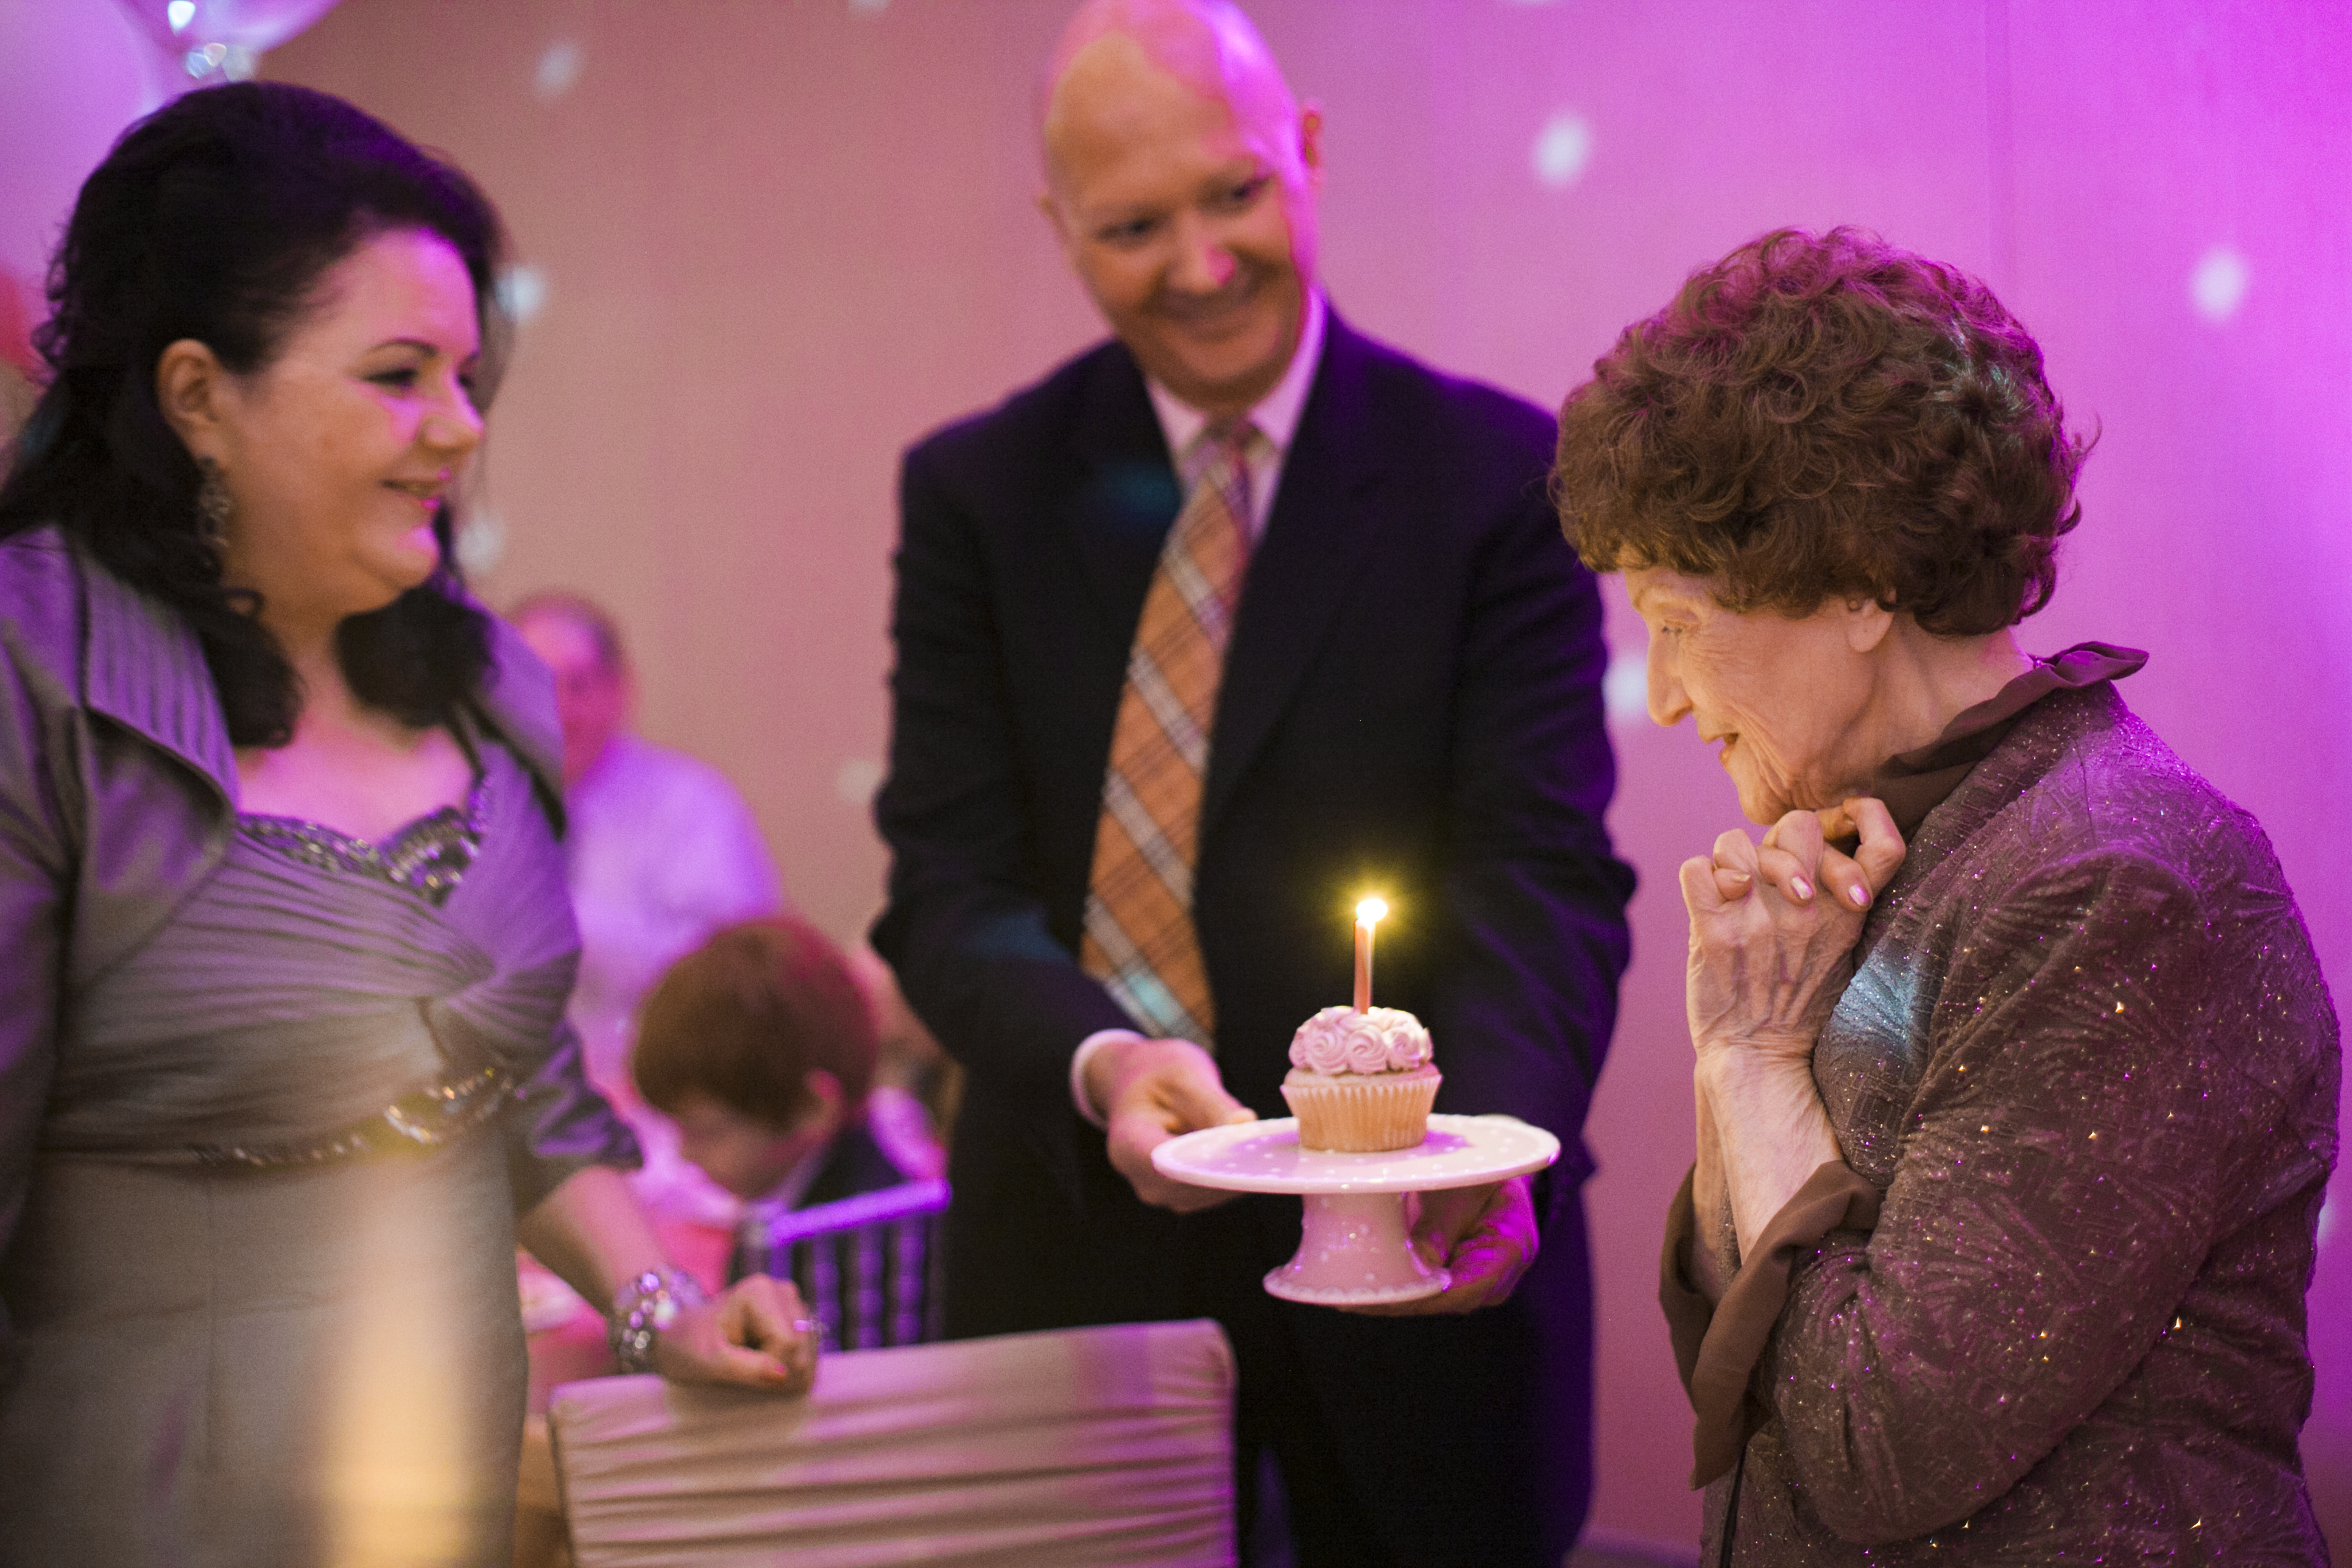 Celebrating 100-years young with one special cupcake from Swirlz Cupcakes!